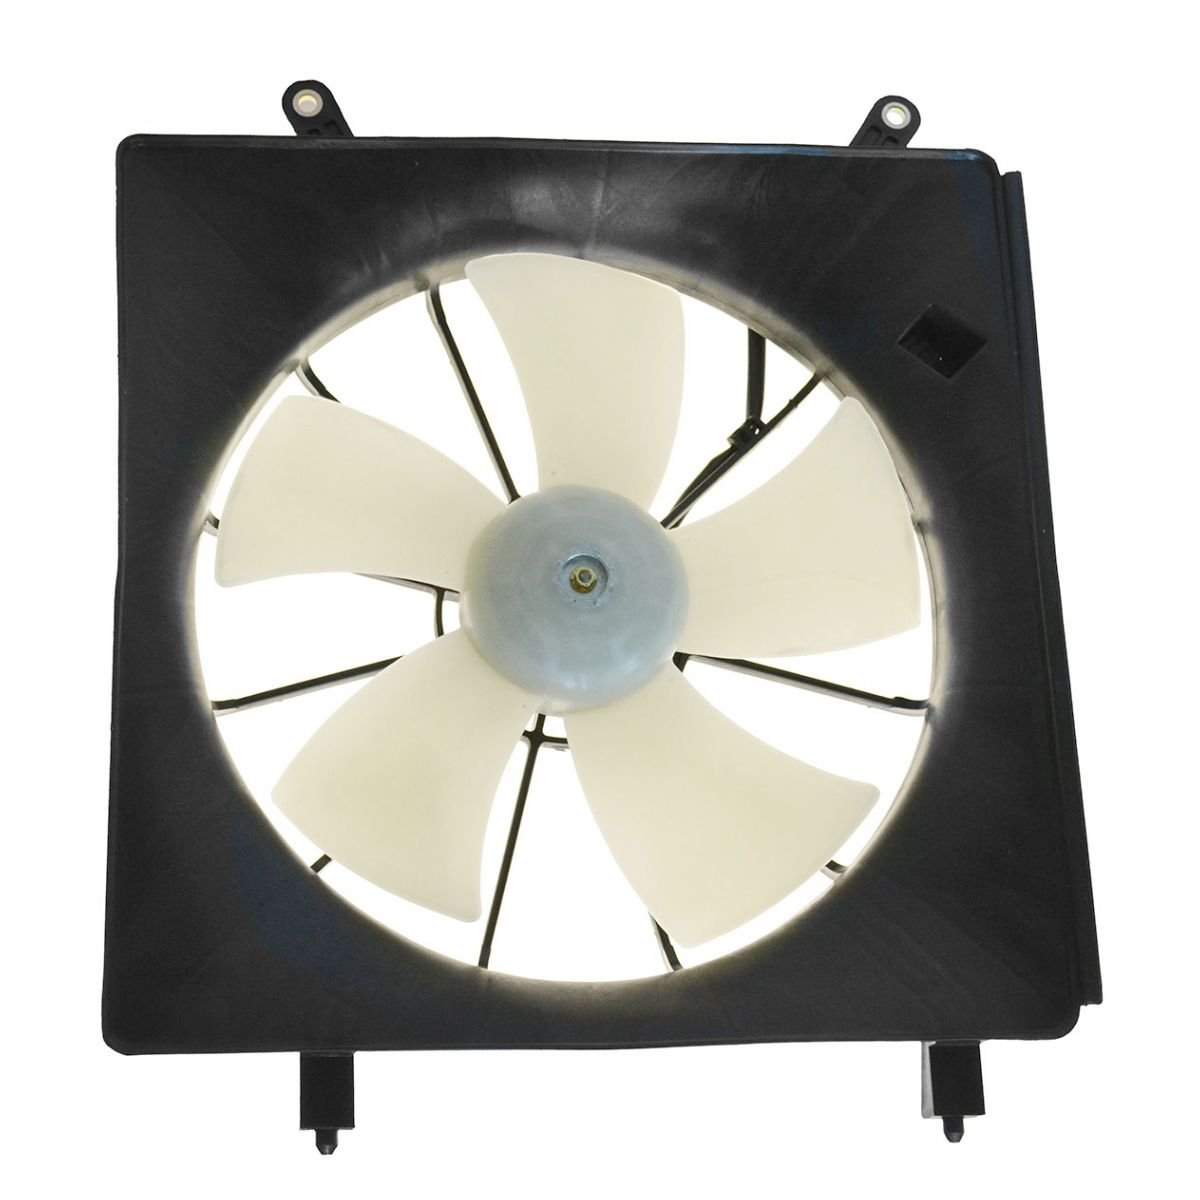 Radiator Cooling Fan Motor & Shroud 19015-PZD-A01 for Honda Element CR-V AM Autoparts